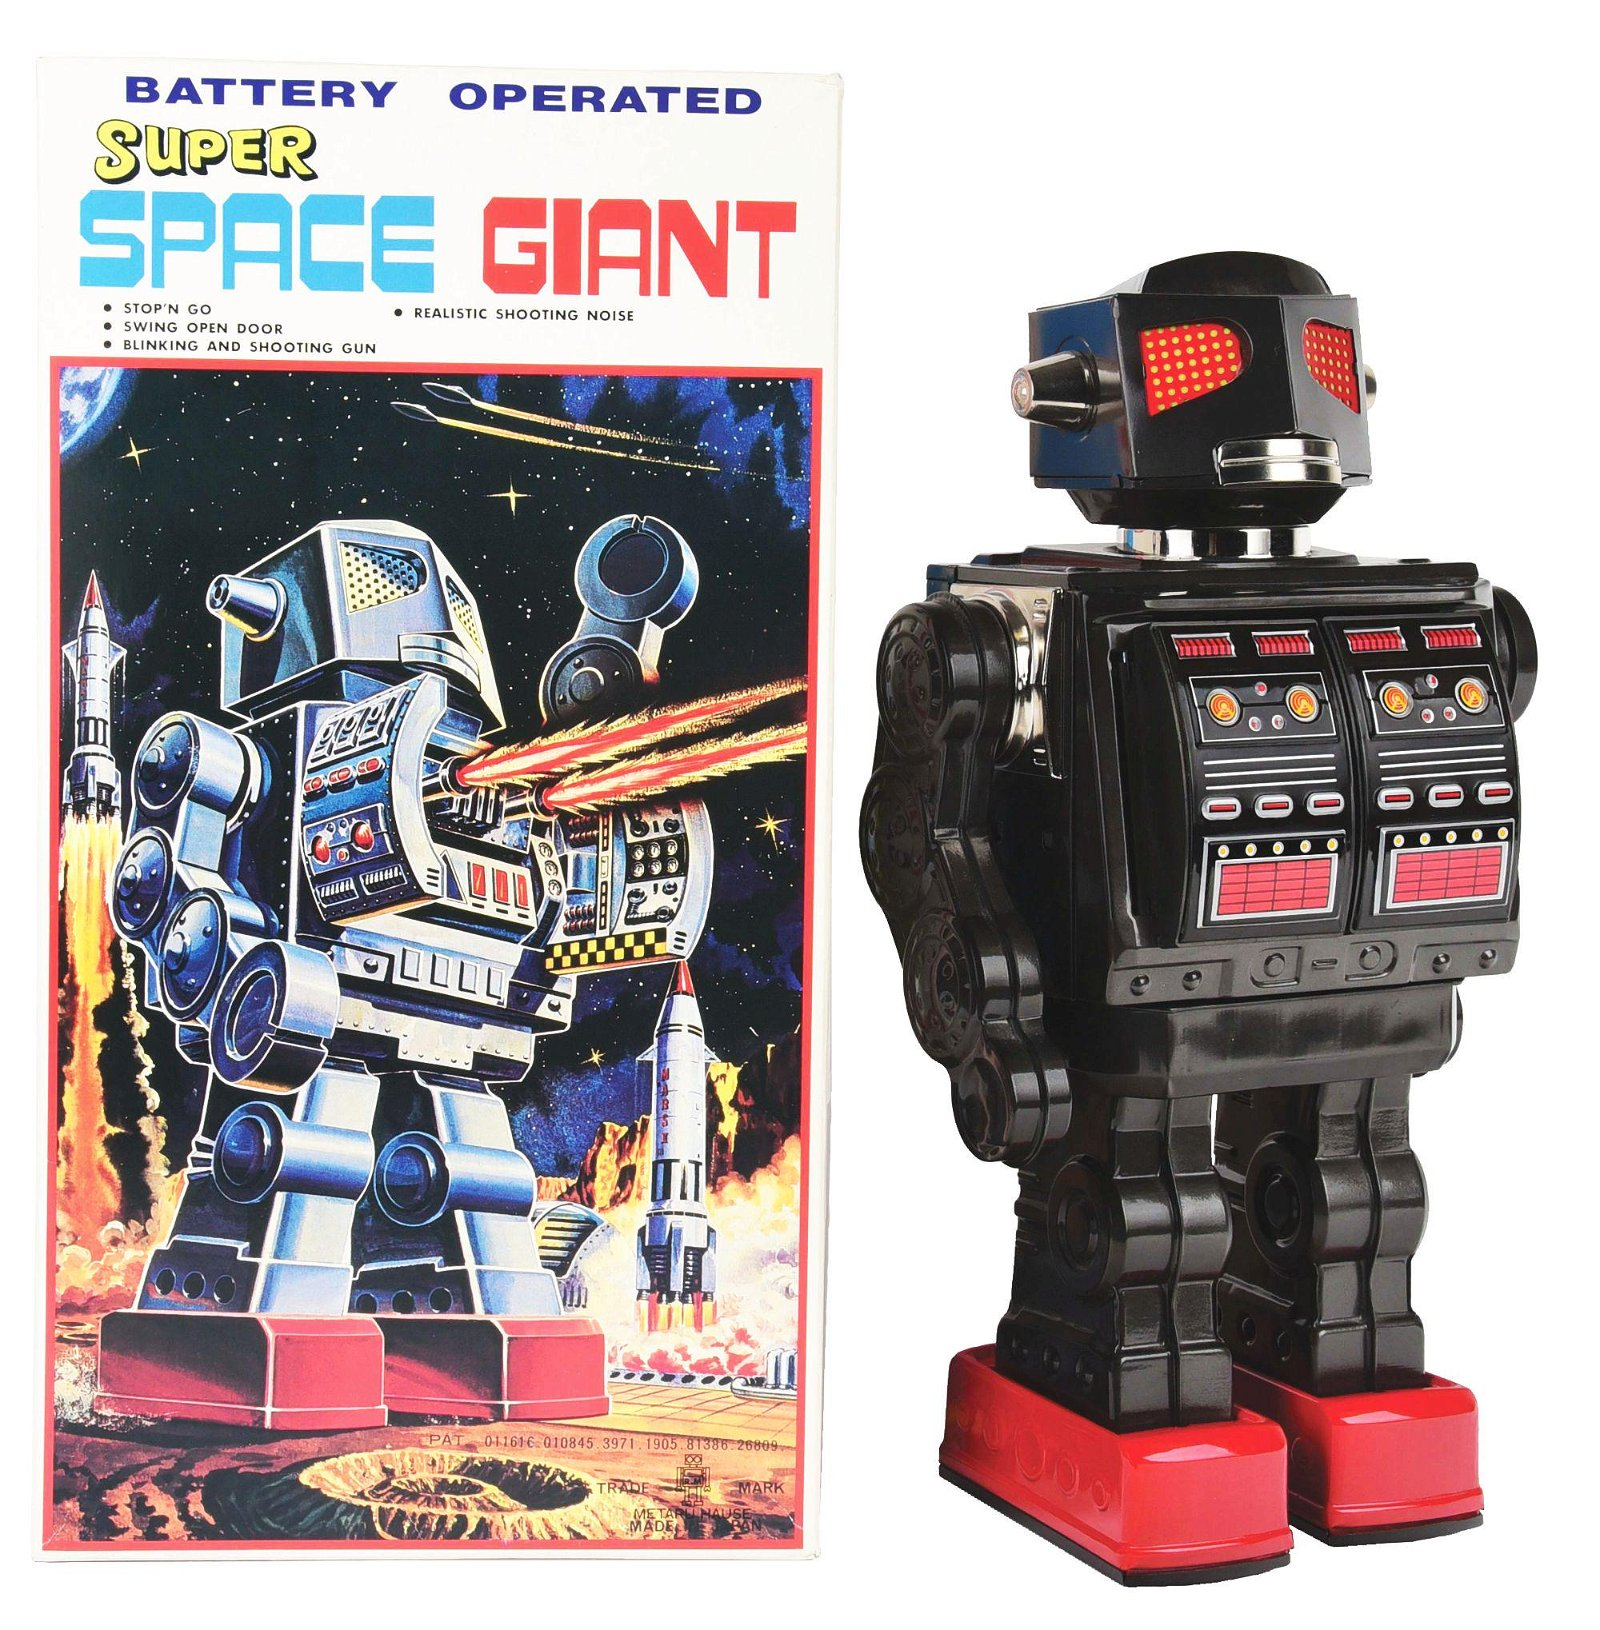 JAPANESE BATTERY-OPERATED TIN-LITHO SUPER SPACE GIANT